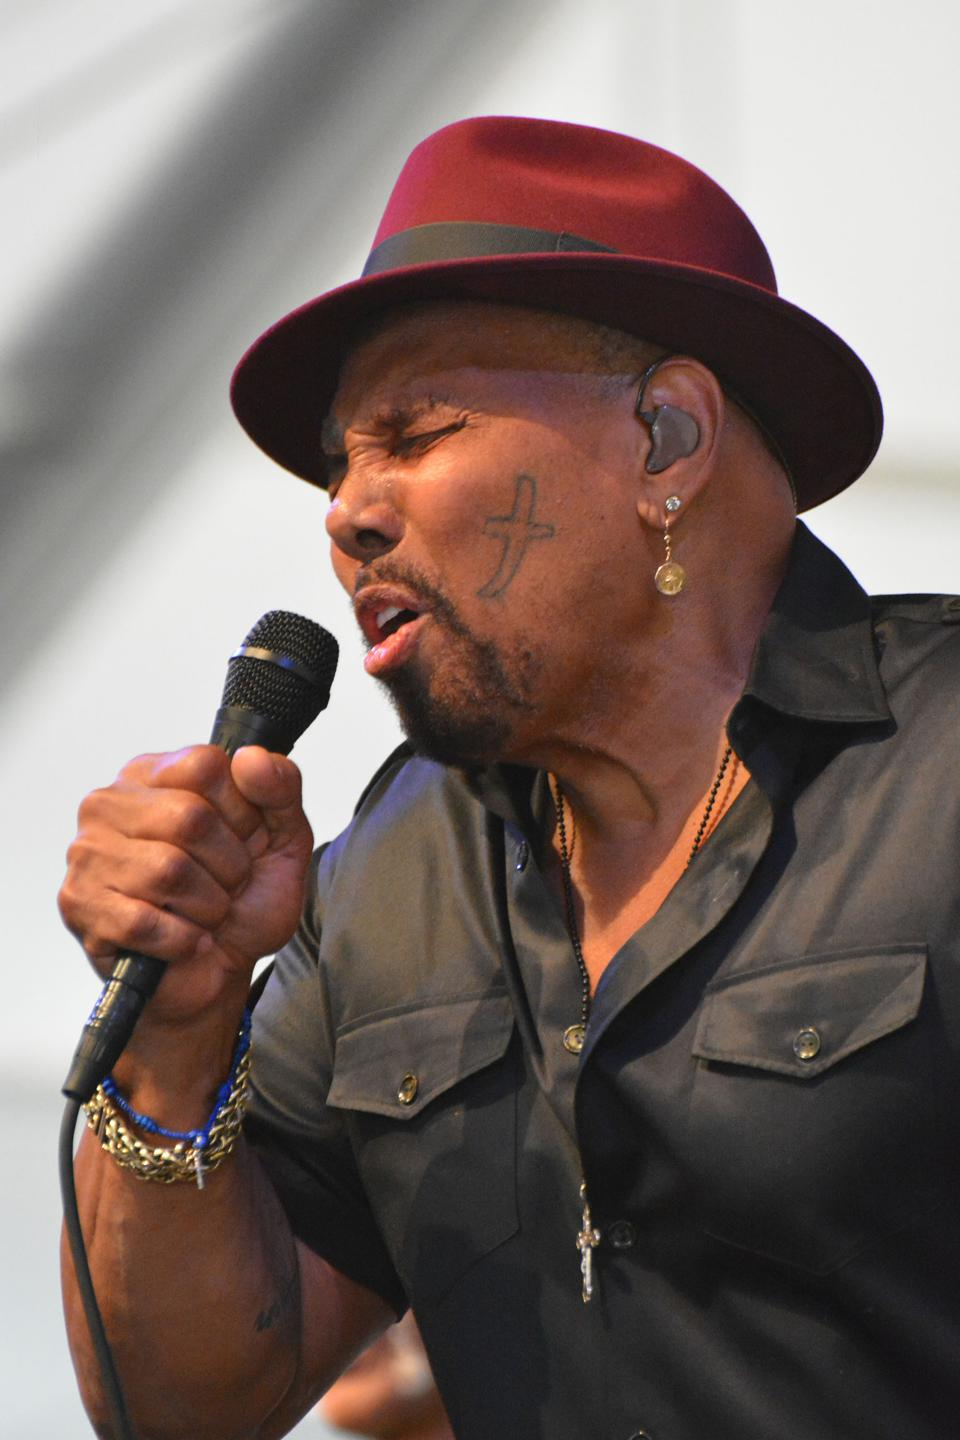 Famous New Orleans musician Aaron Neville on stage